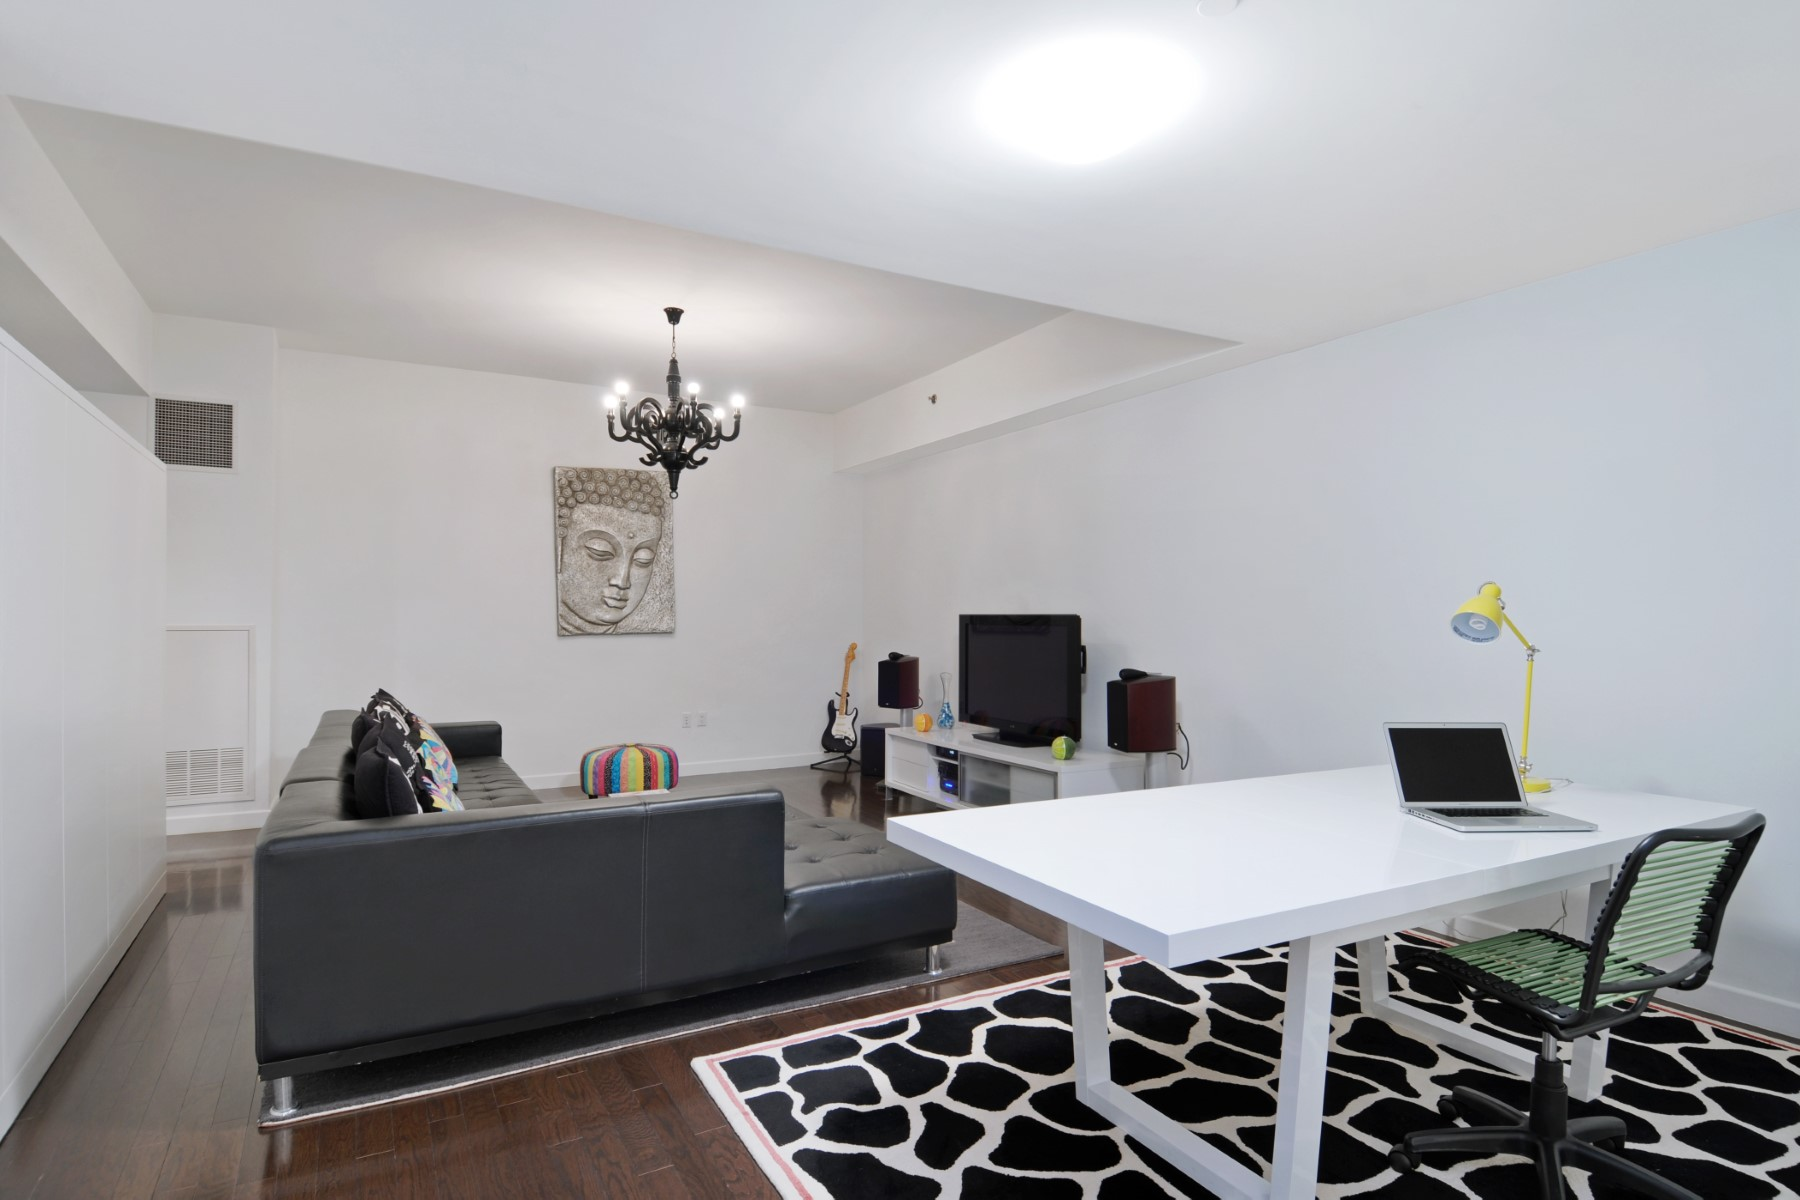 Condominium for Sale at 1,943 sq.ft. Duplex near Central Park 462 West 58th Street Apt 1e New York, New York 10019 United States